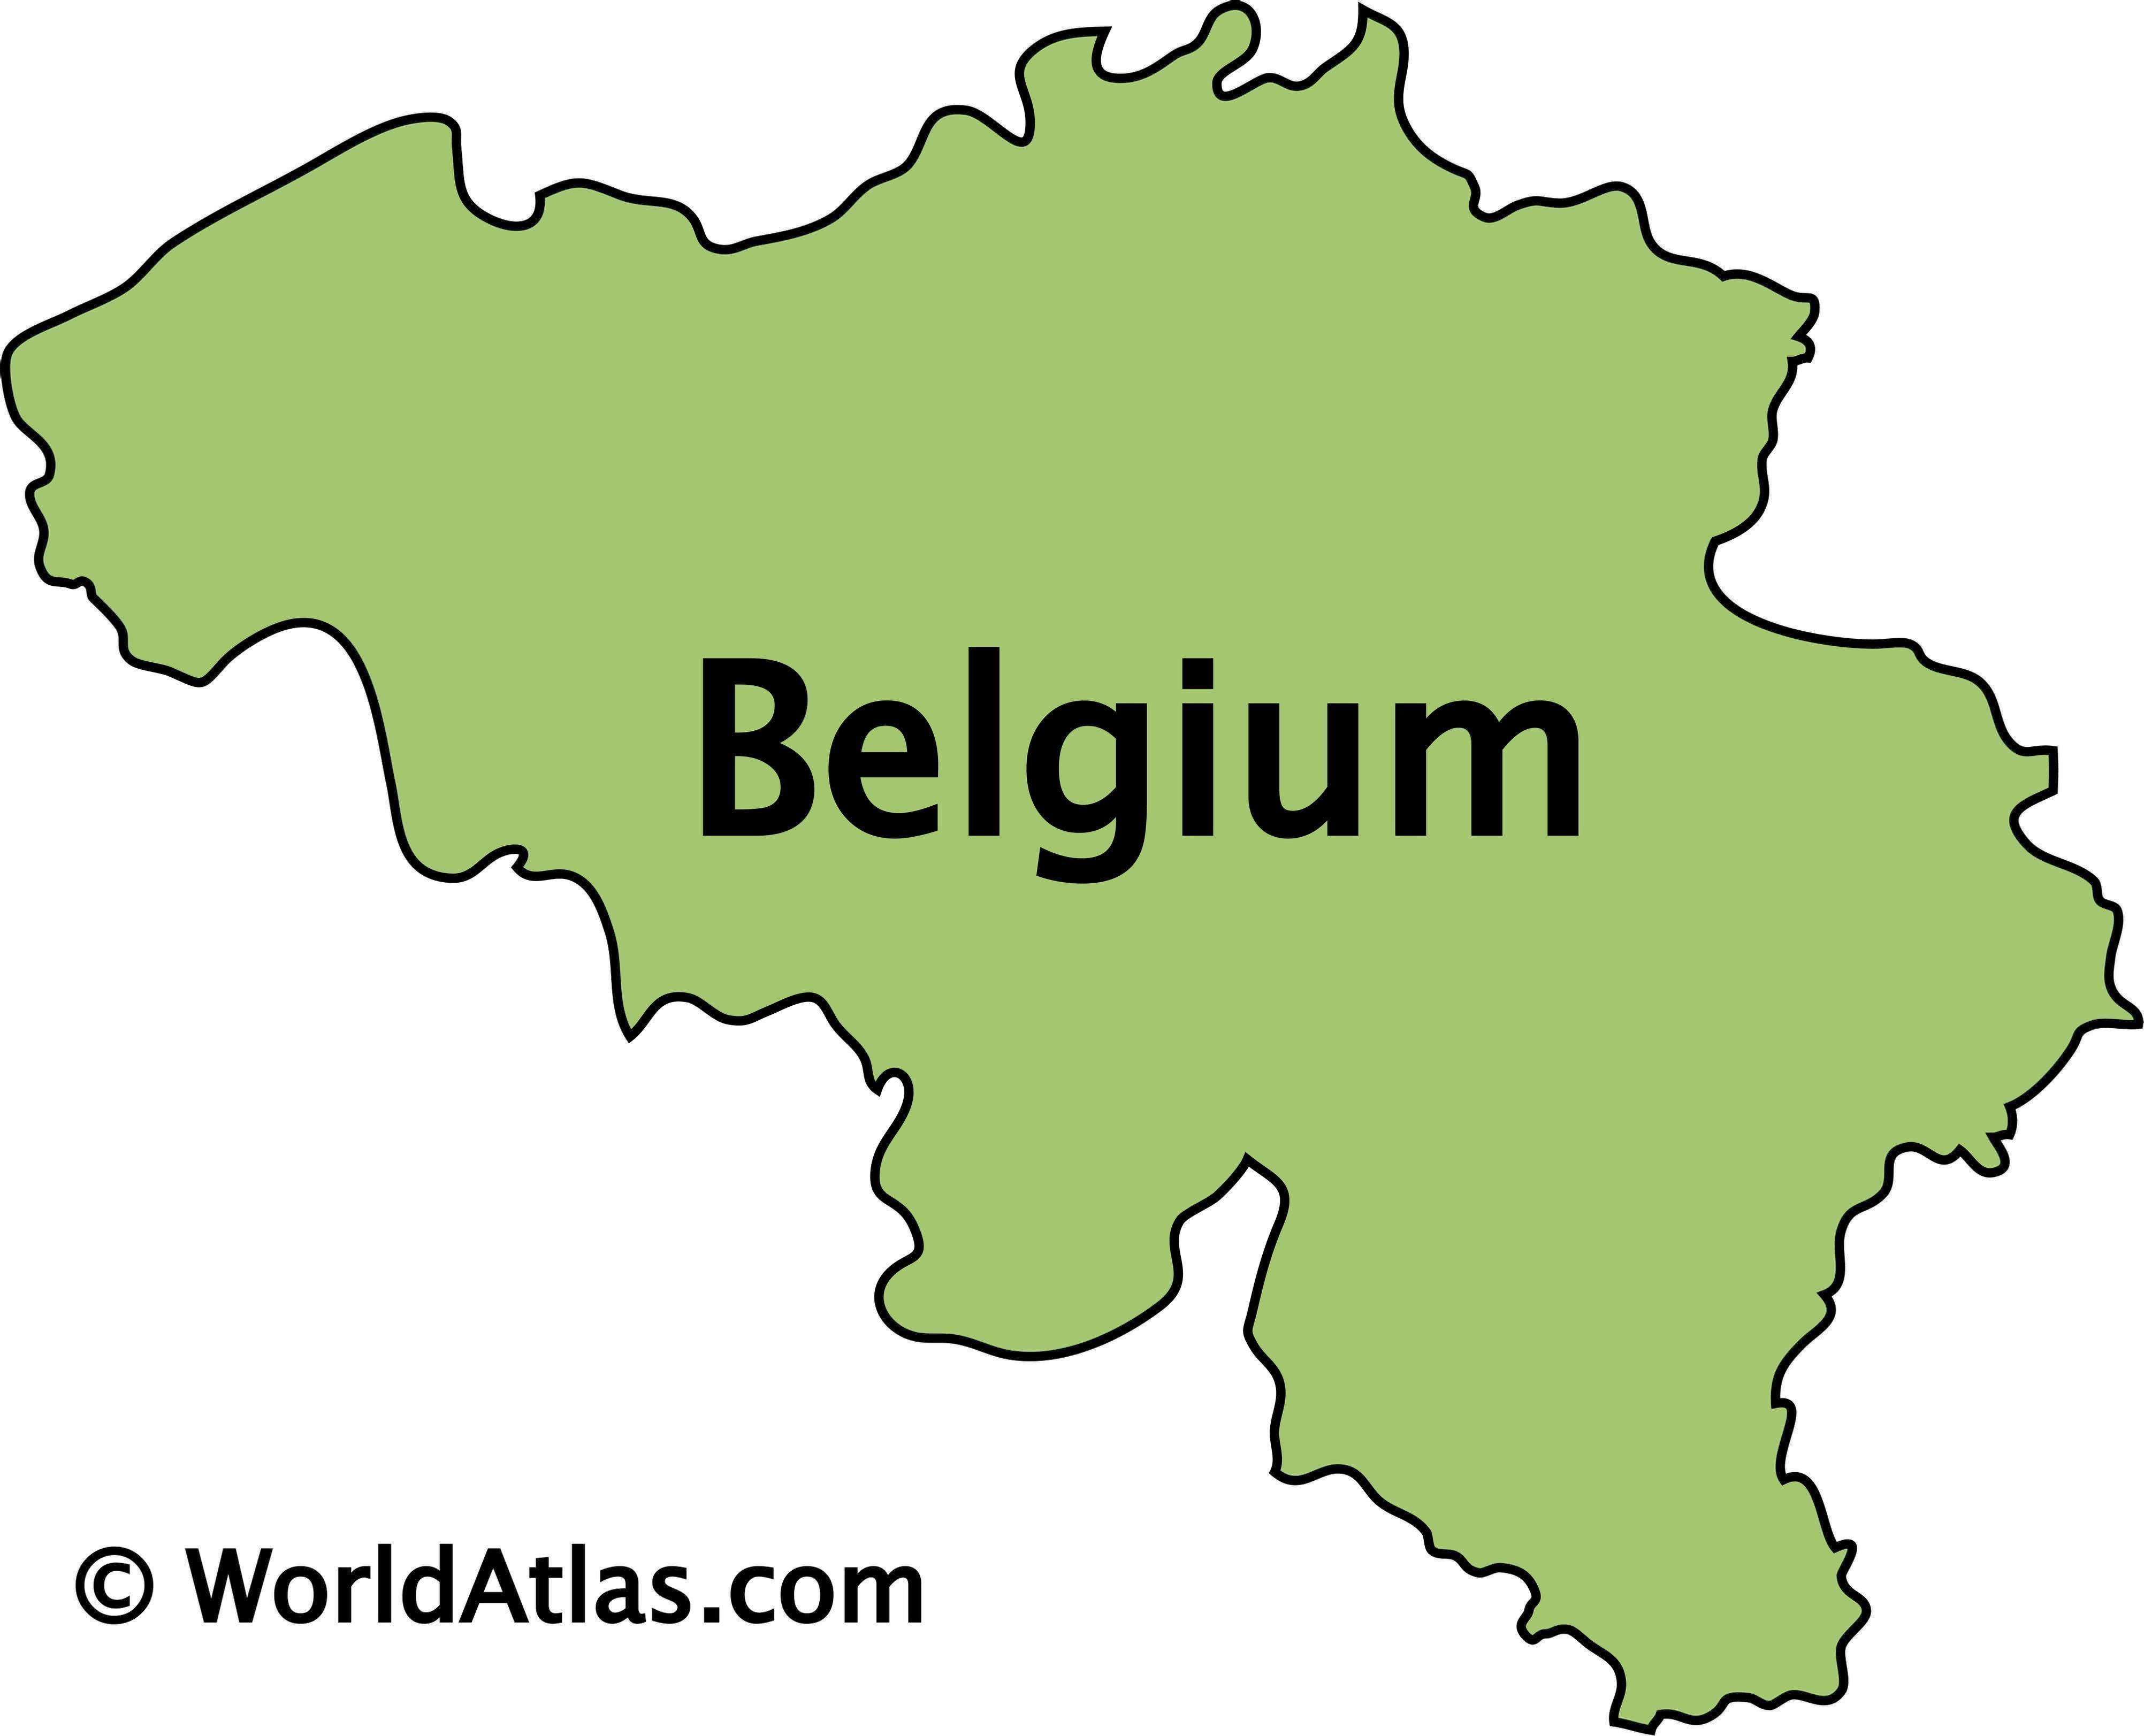 Outline Map of Belgium